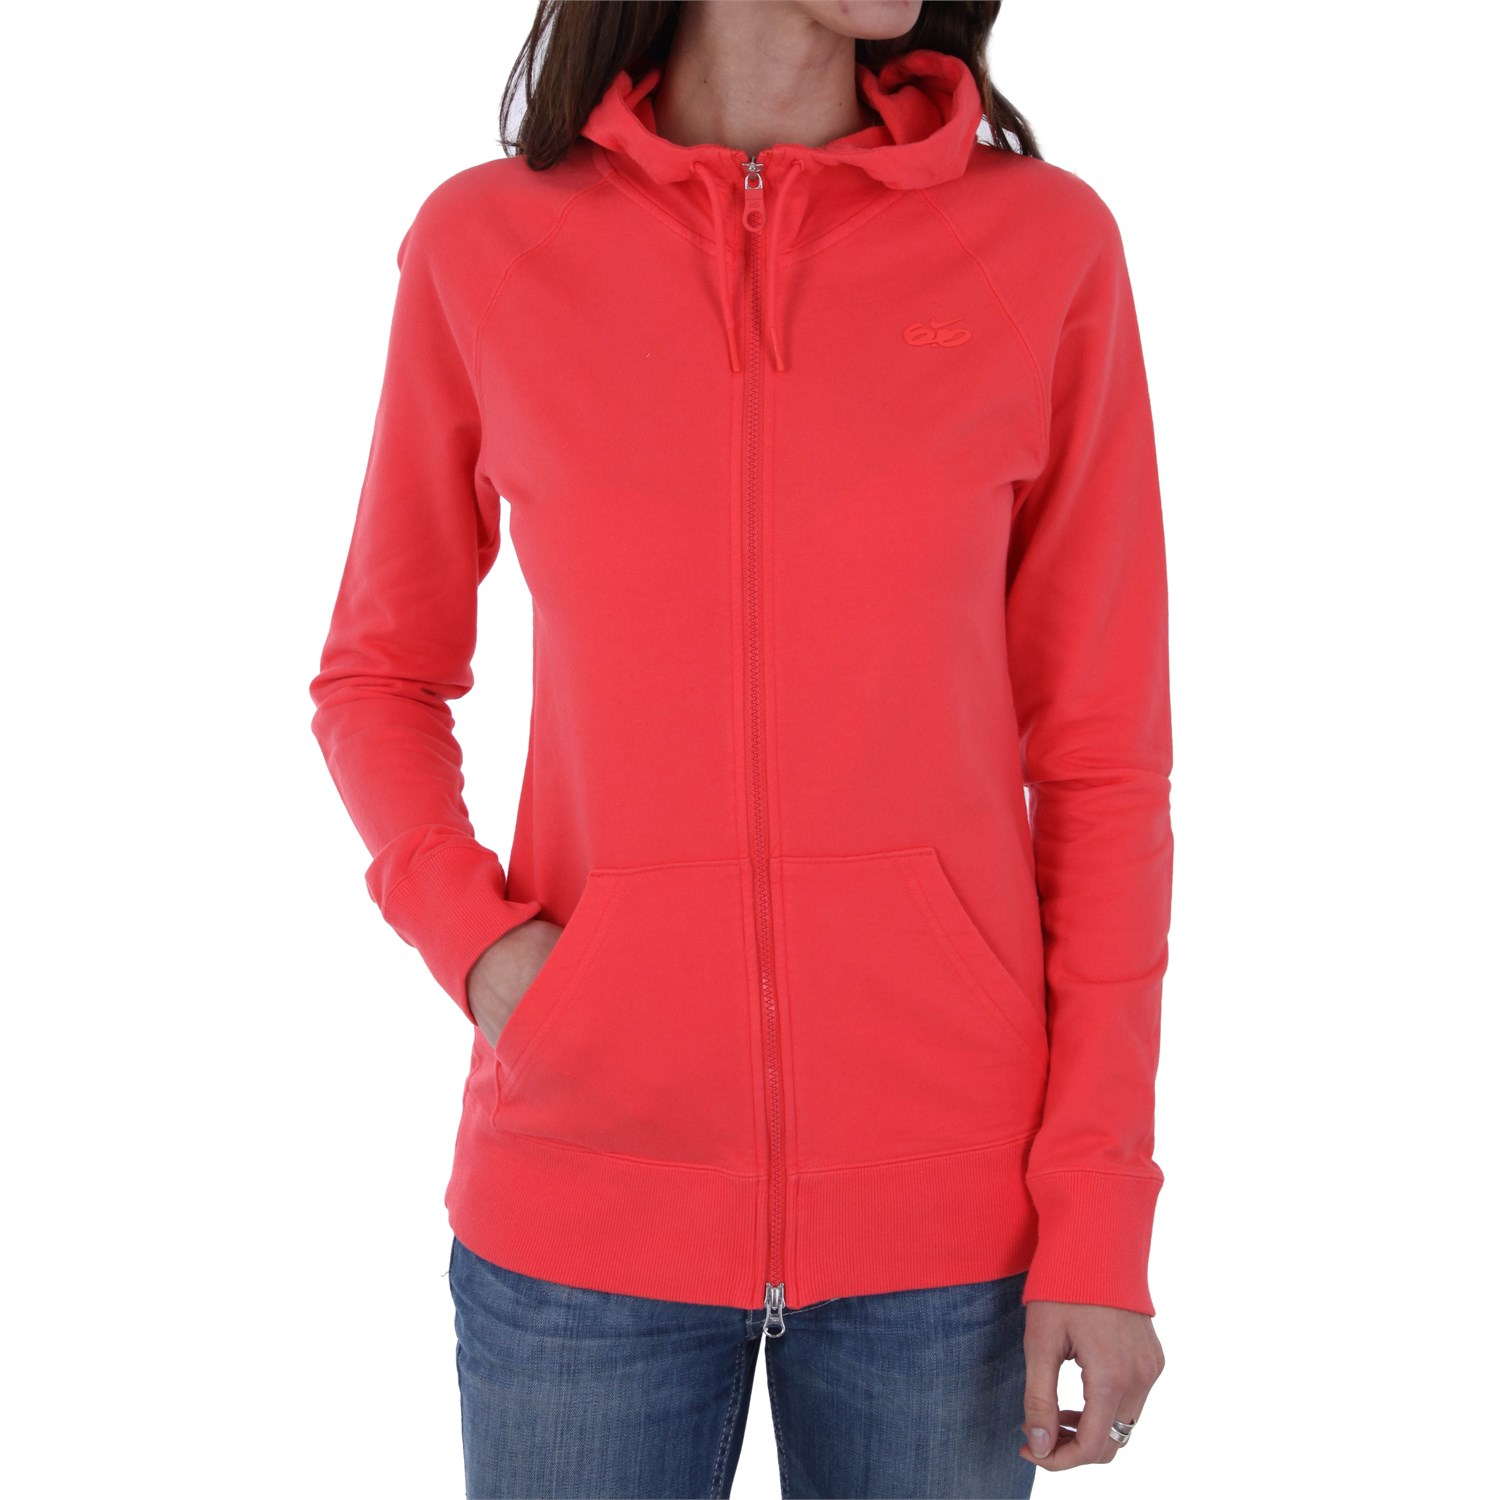 Nike 6.0 Sixo Icon Zip Hoodie - Women's | evo outlet